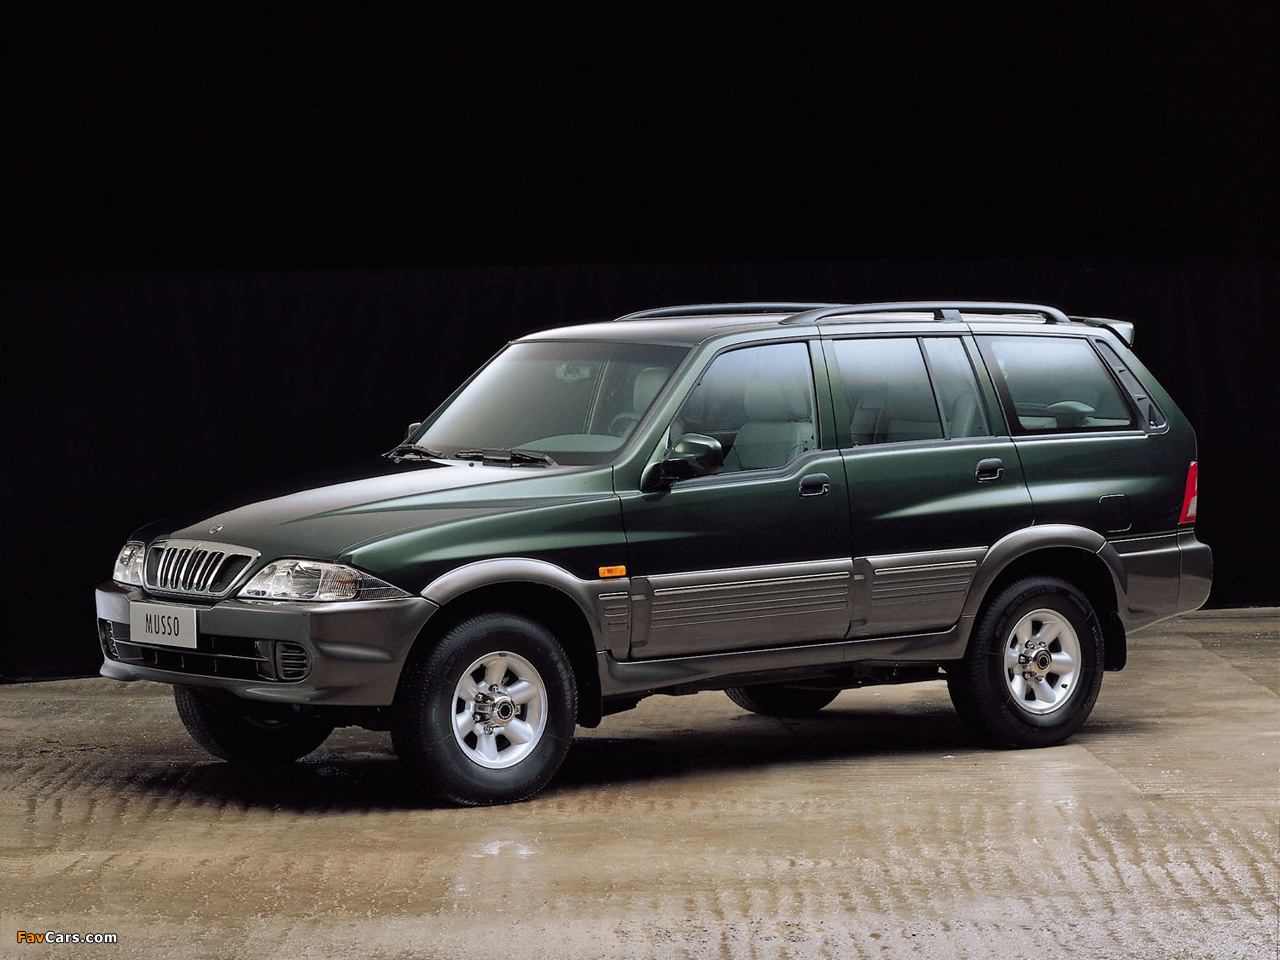 1998 Ssangyong Musso #5